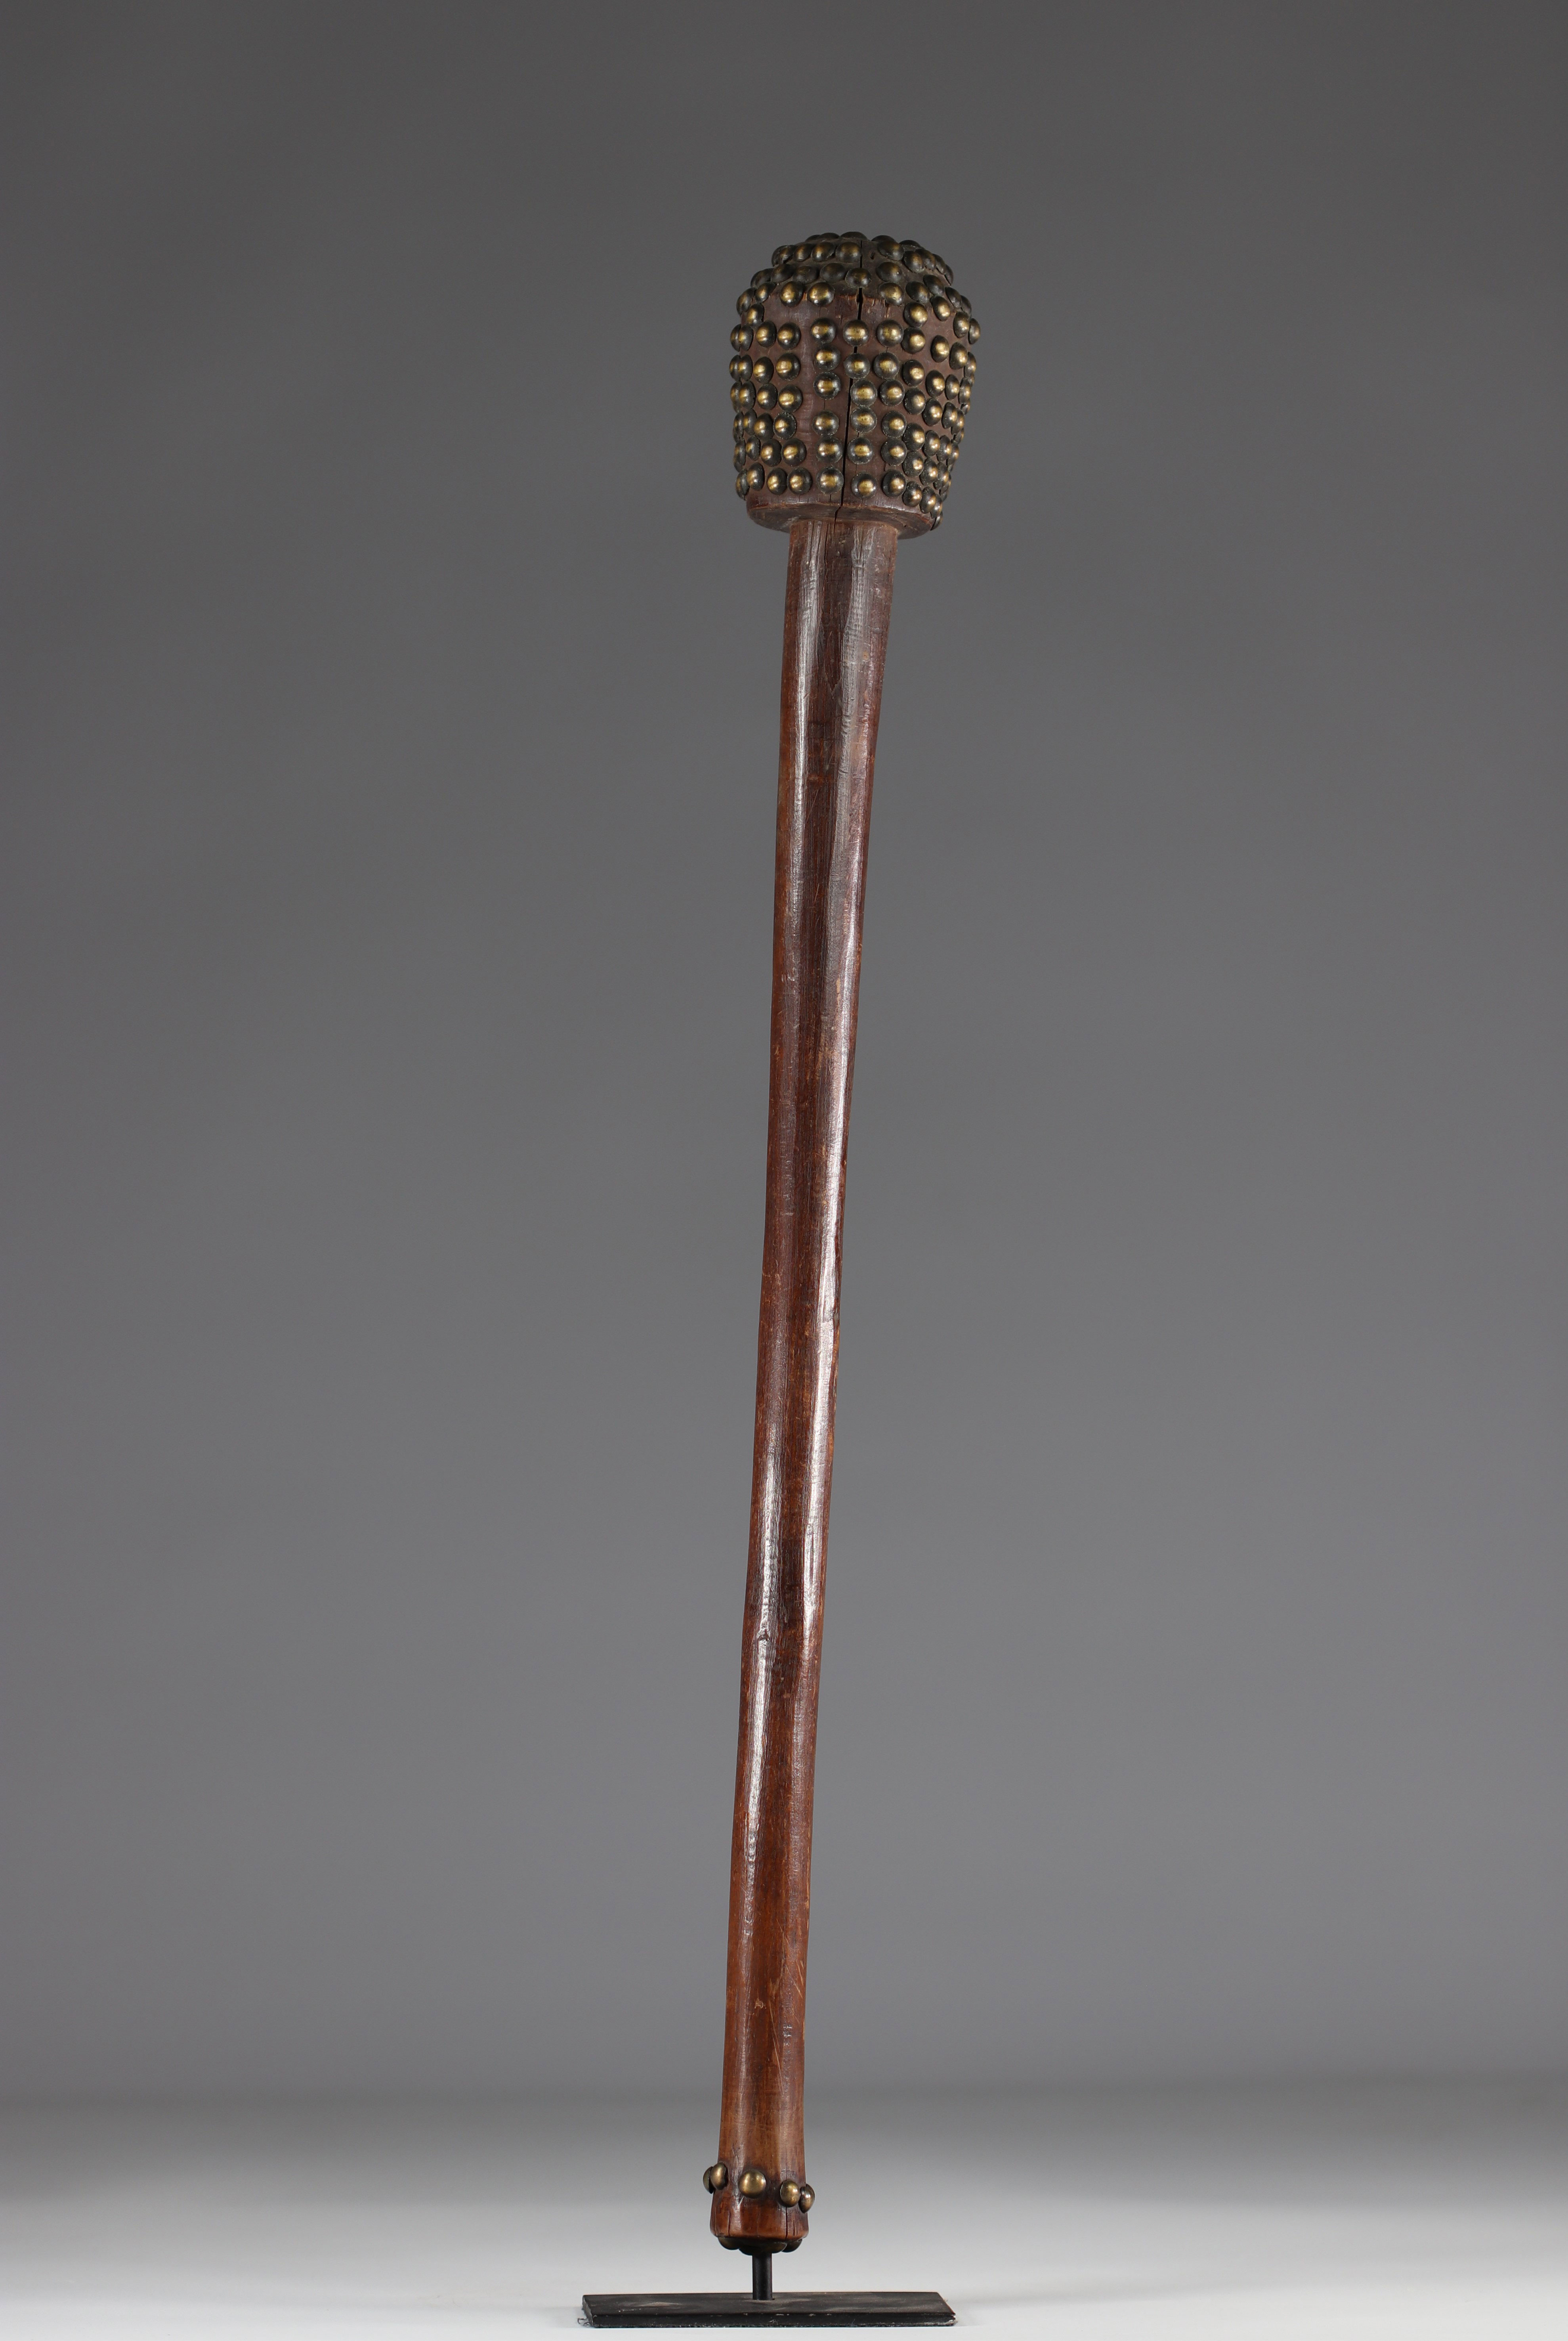 Tchokwe club - coll. private Belgian - early 20th century - DRC - Africa